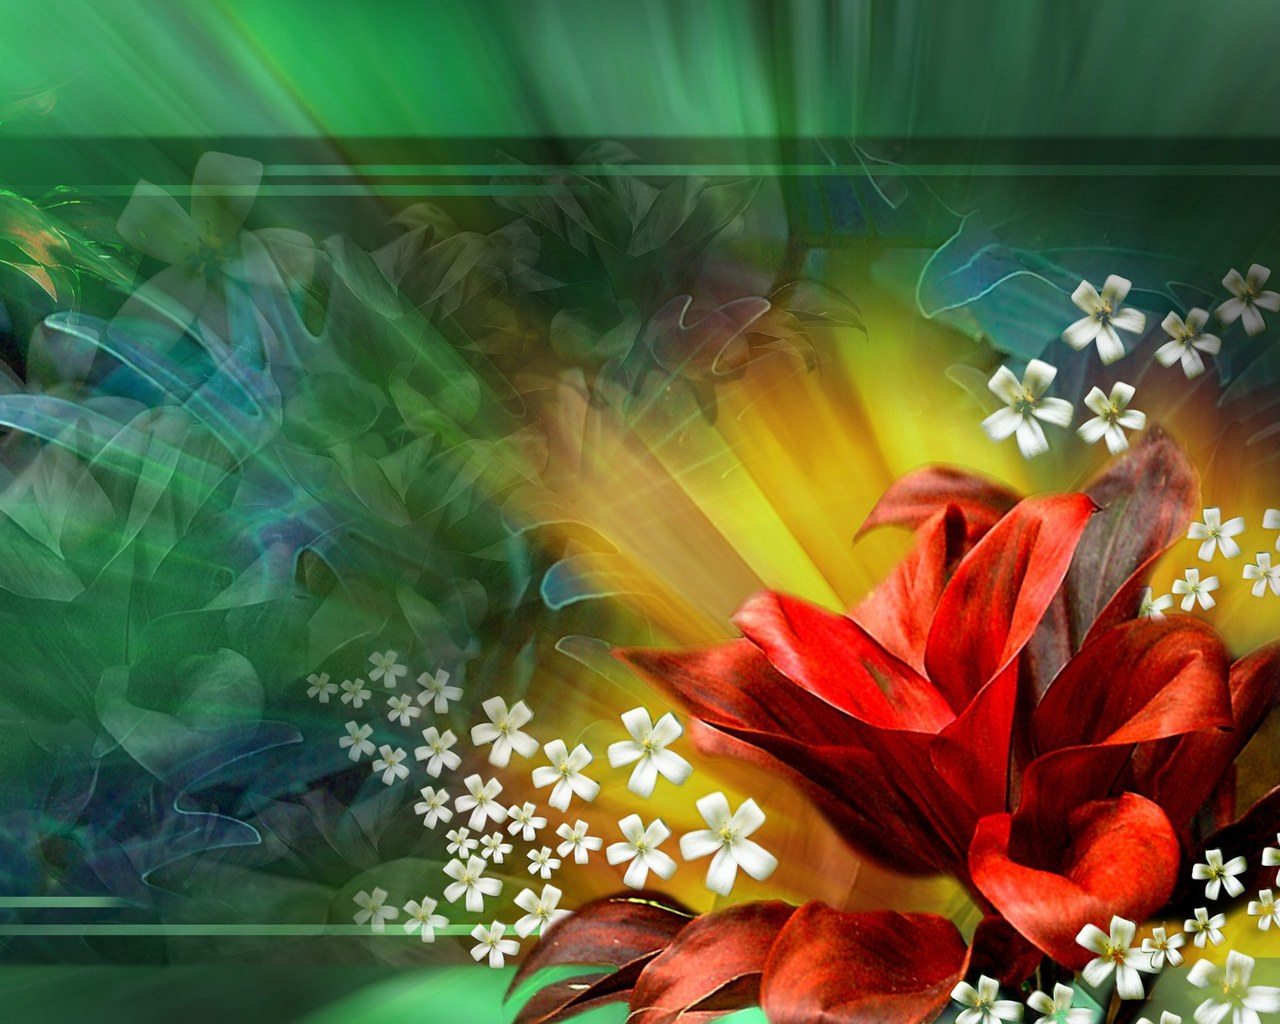 Backgrounds Wallpapers Laptops Notebooks Animation D Art